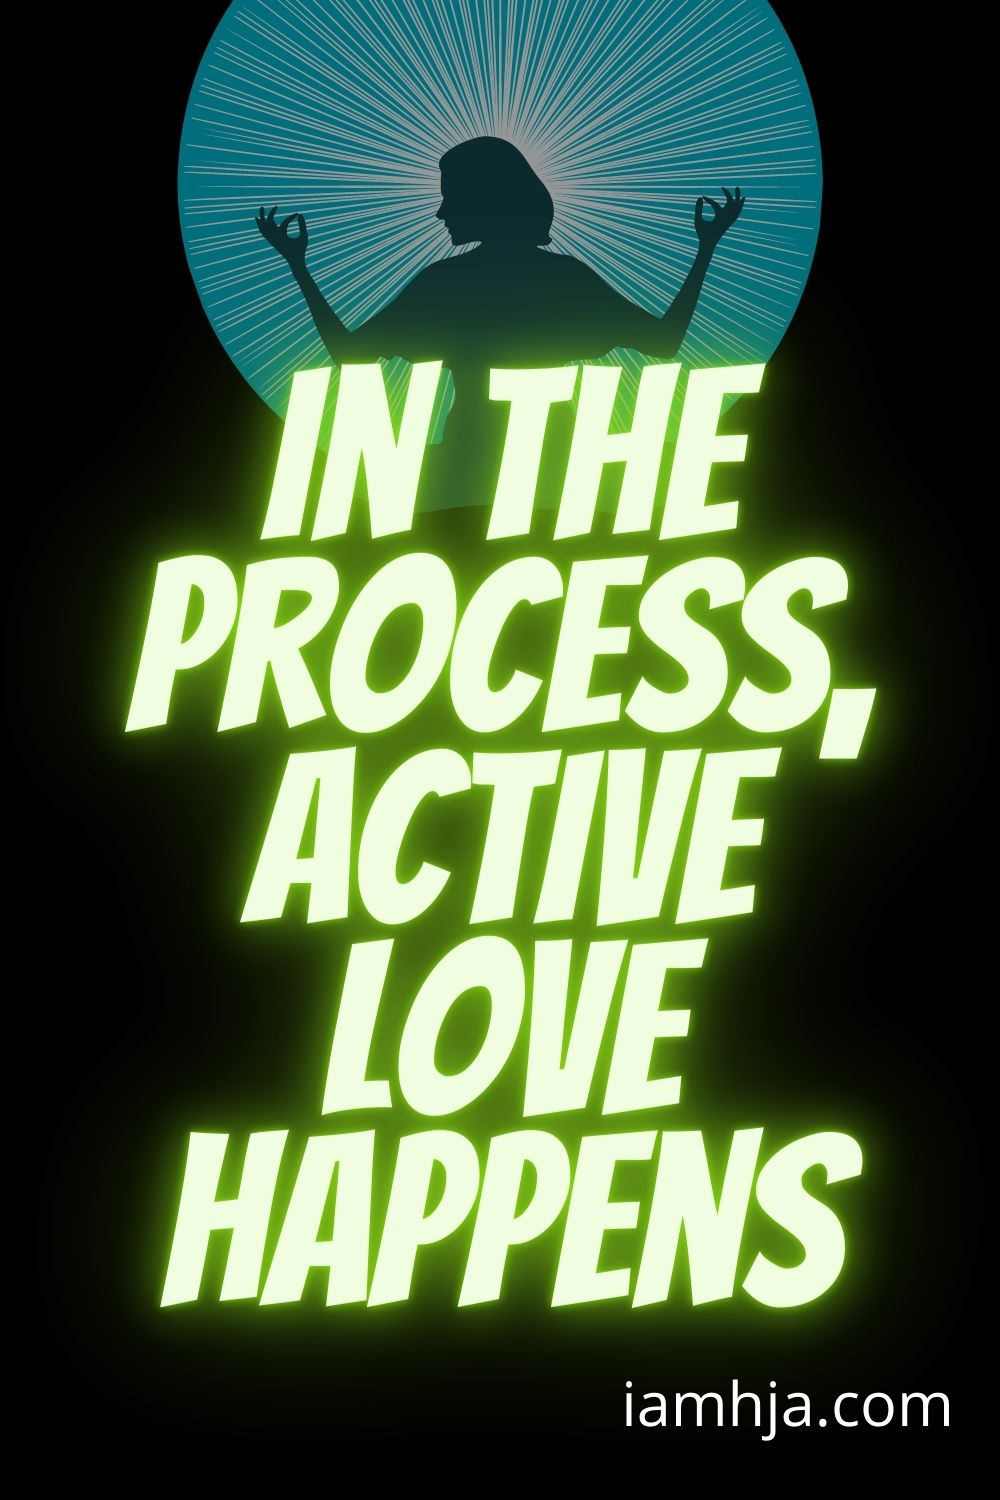 Spiritual Quotes: In the process, active love happens